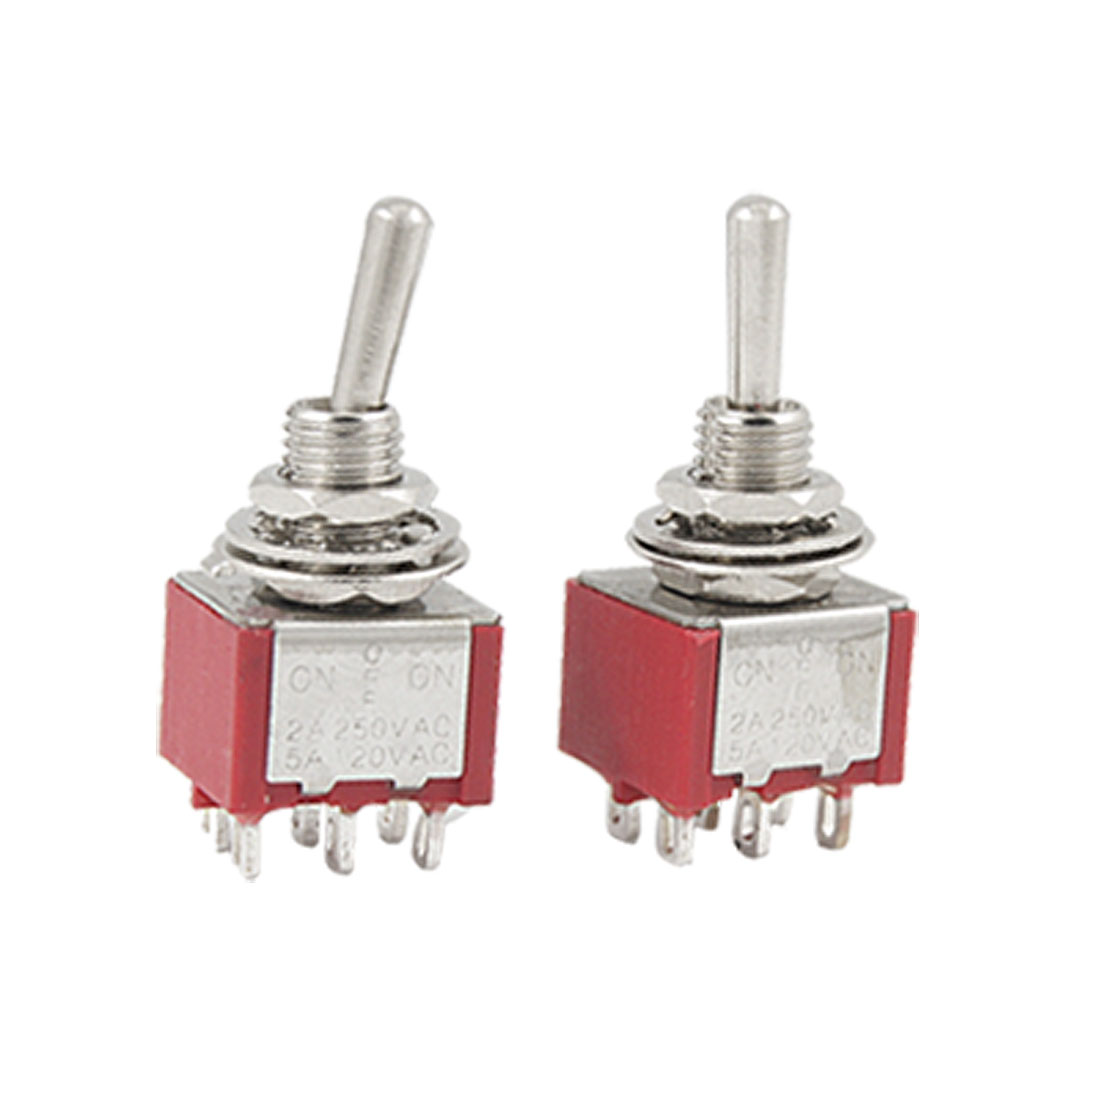 2 Pcs ON-OFF-ON DPDT Toggle Switches AC 120V/5A AC 250V/2A